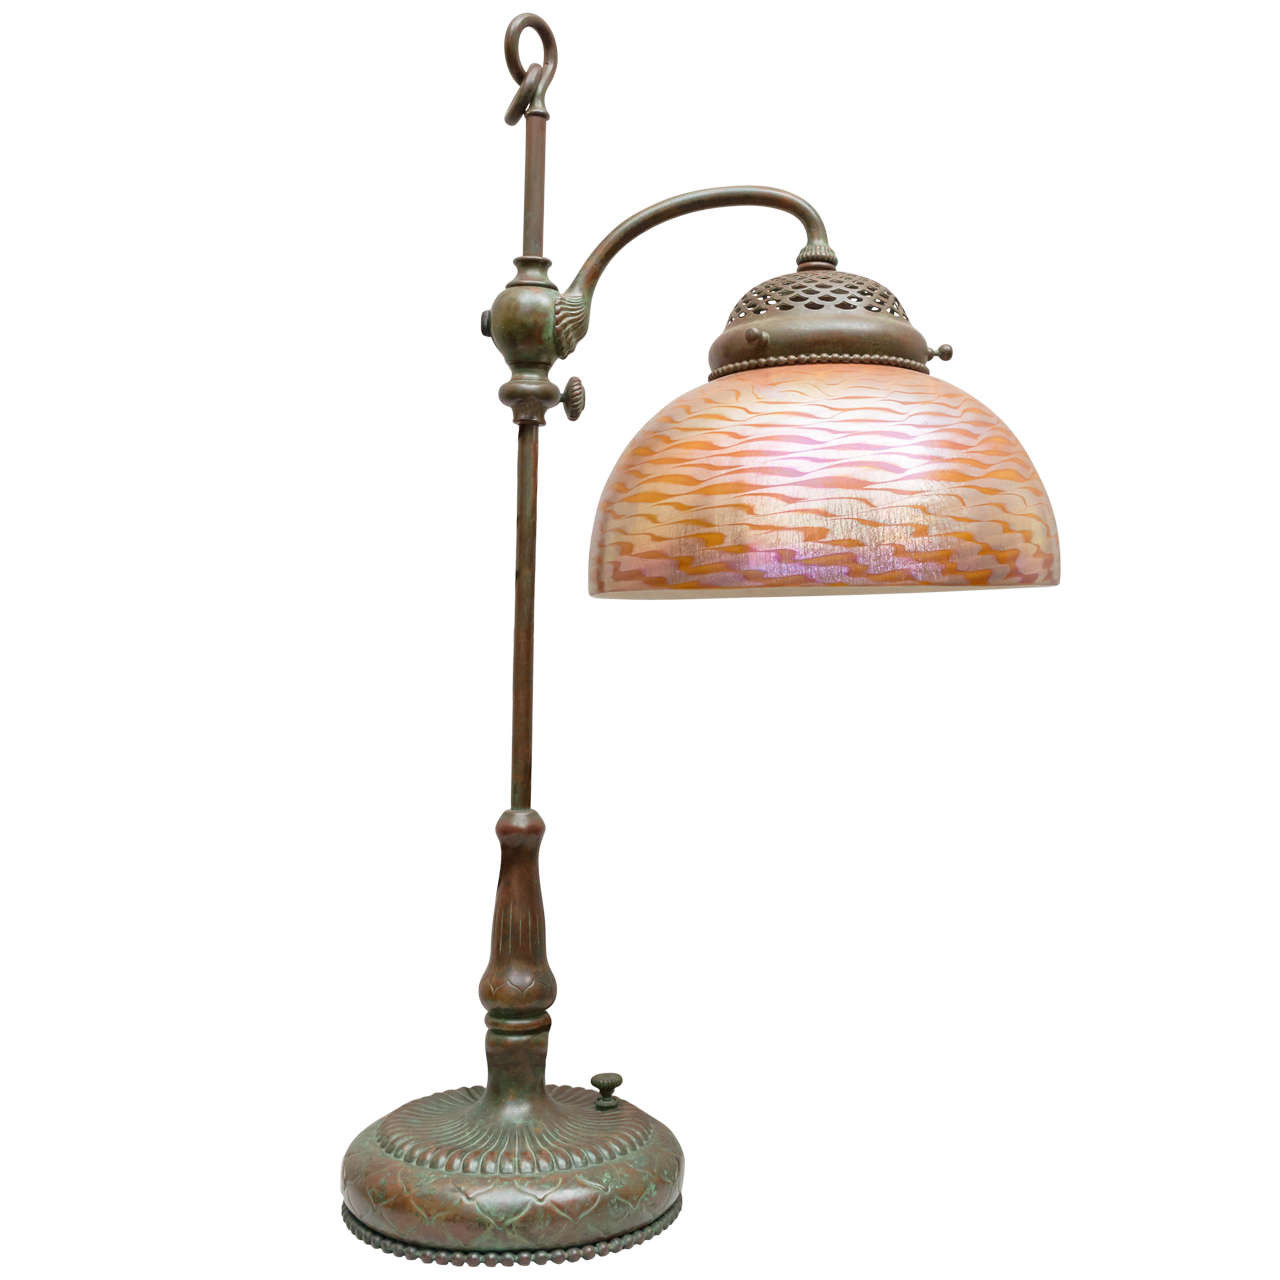 Best ideas about Tiffany Desk Lamp . Save or Pin Tiffany Studios Desk Lamp with Original Glass Shade at 1stdibs Now.